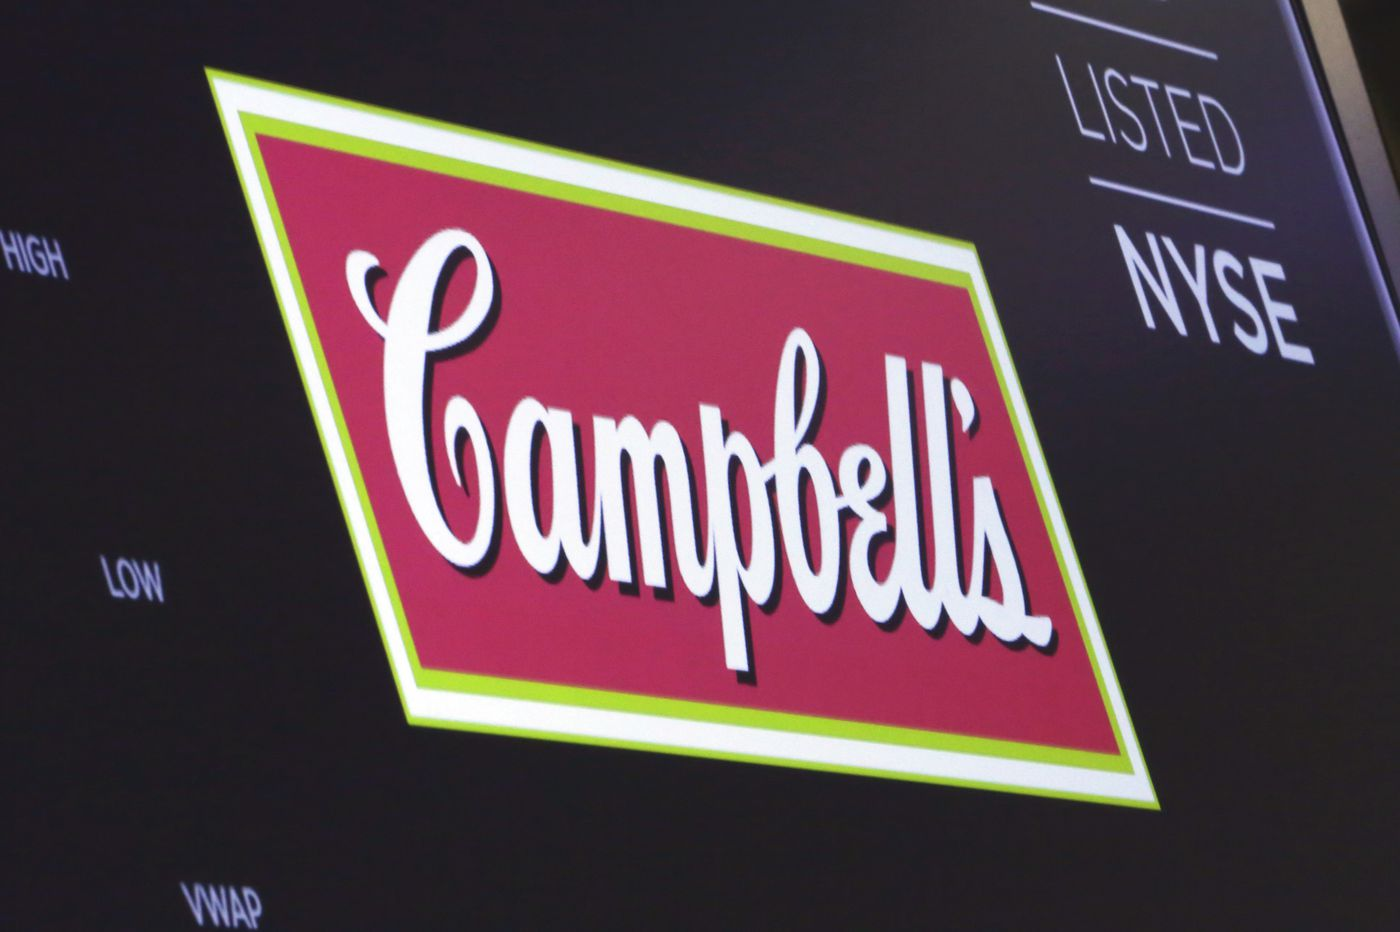 Shares spike, but Campbell Soup's earnings offer little to cheer about